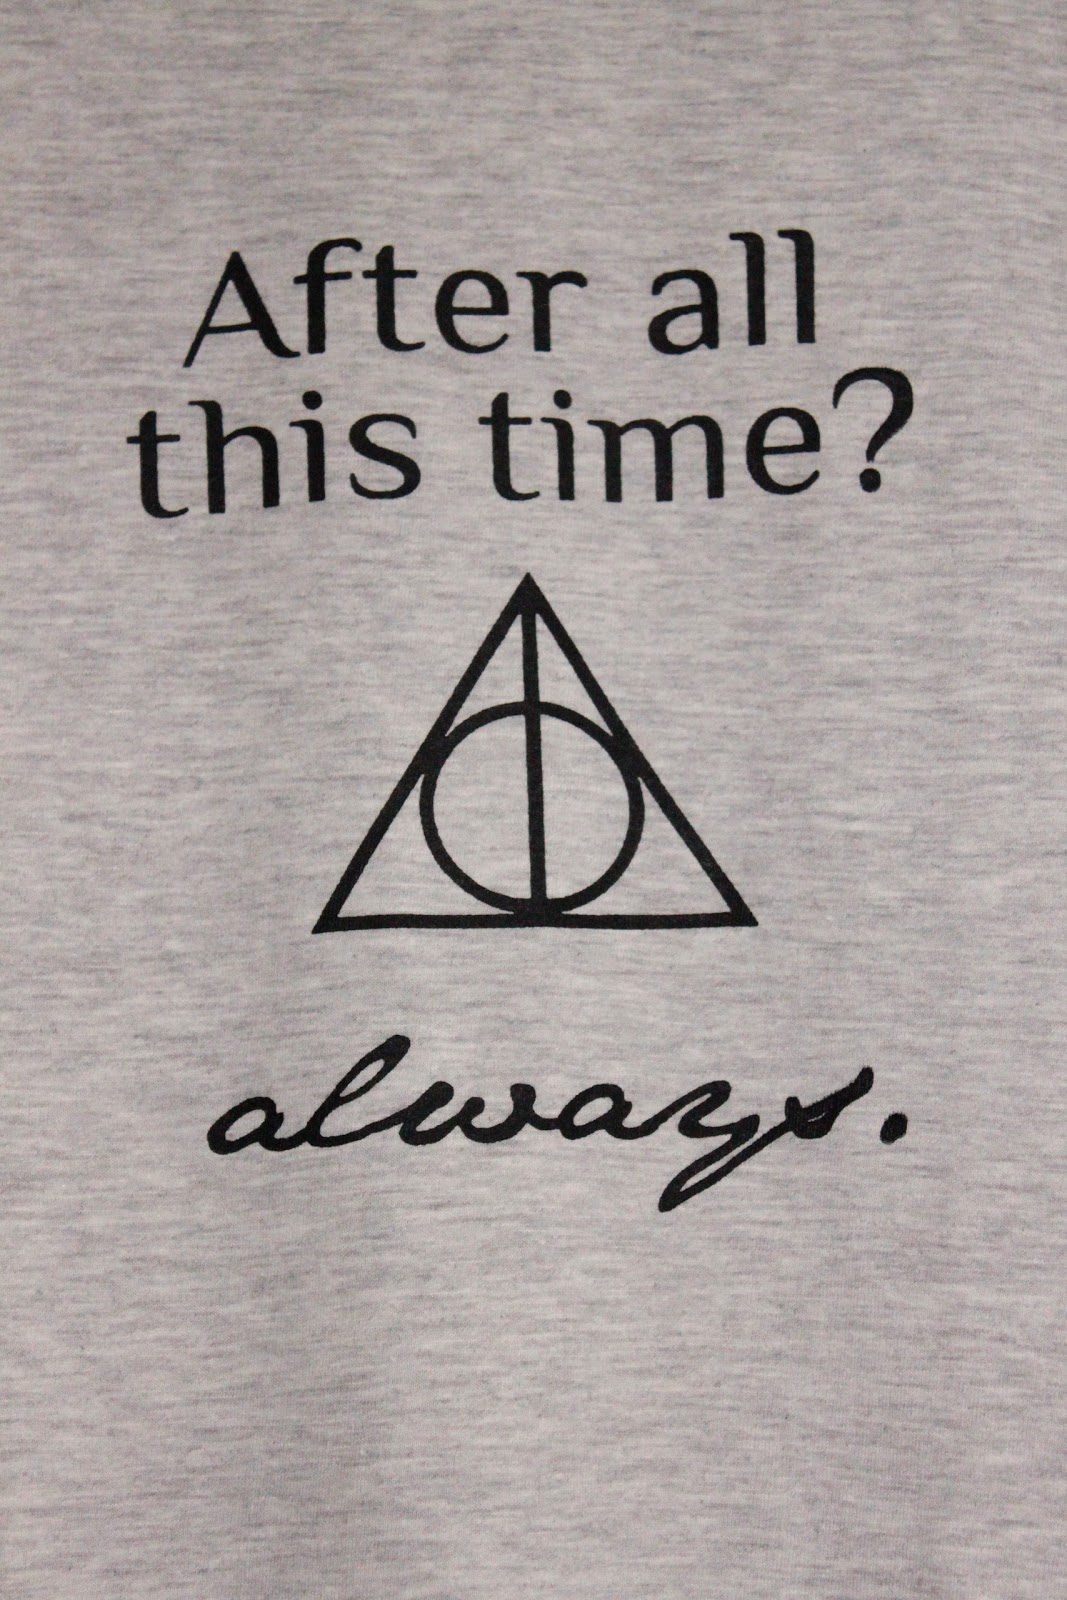 Harry Potter Book Quotes Quotes About Harry Potter Book 33 Quotes